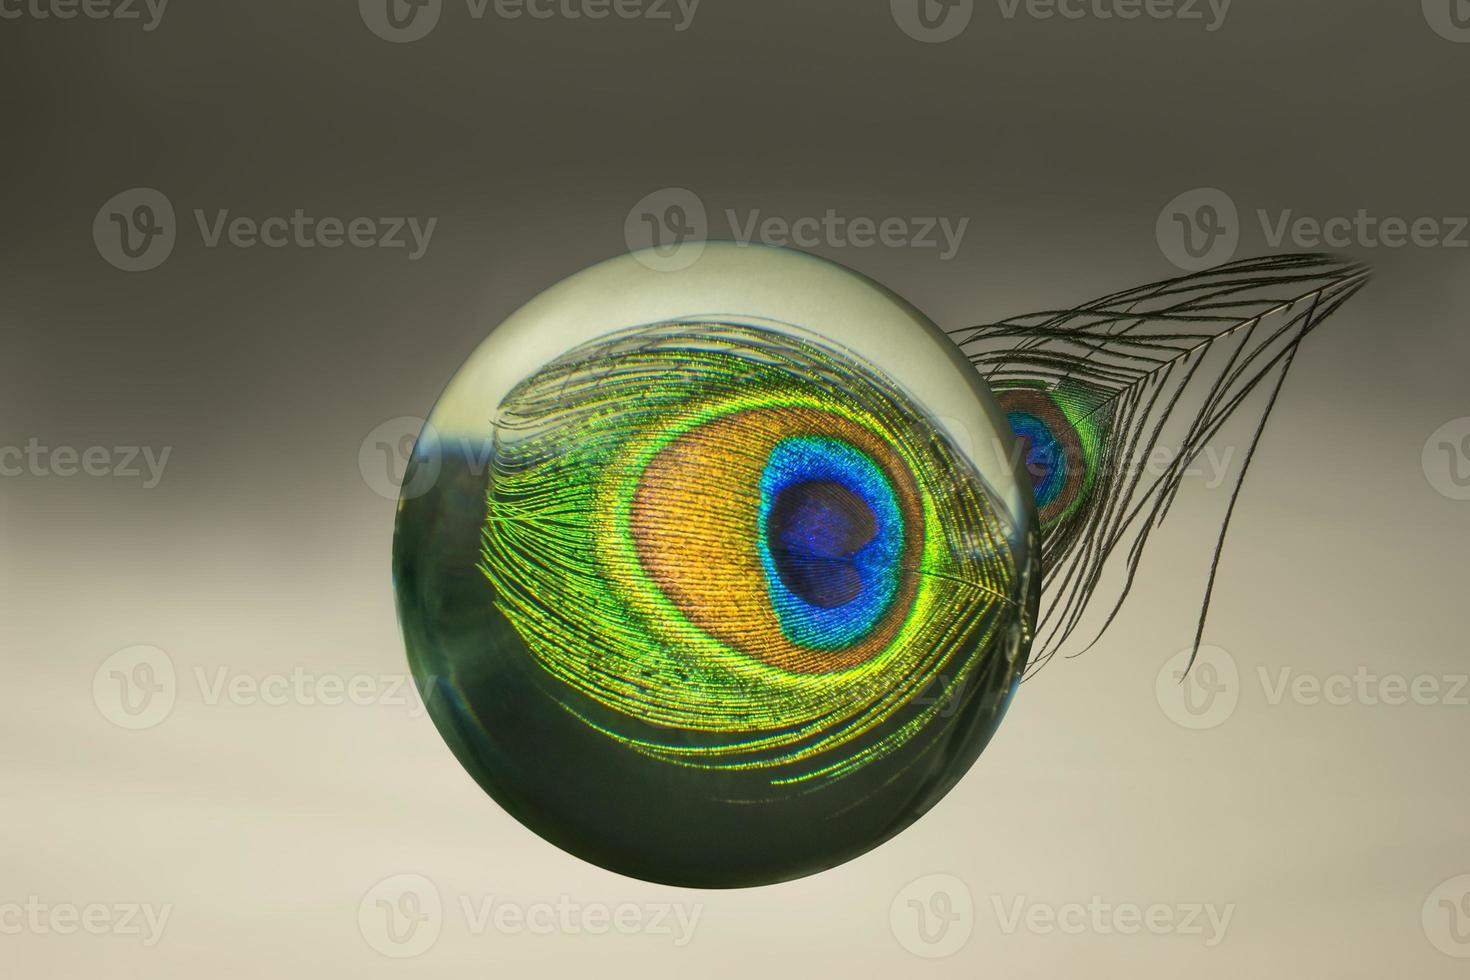 peacock feather reflection in a glass sphere photo